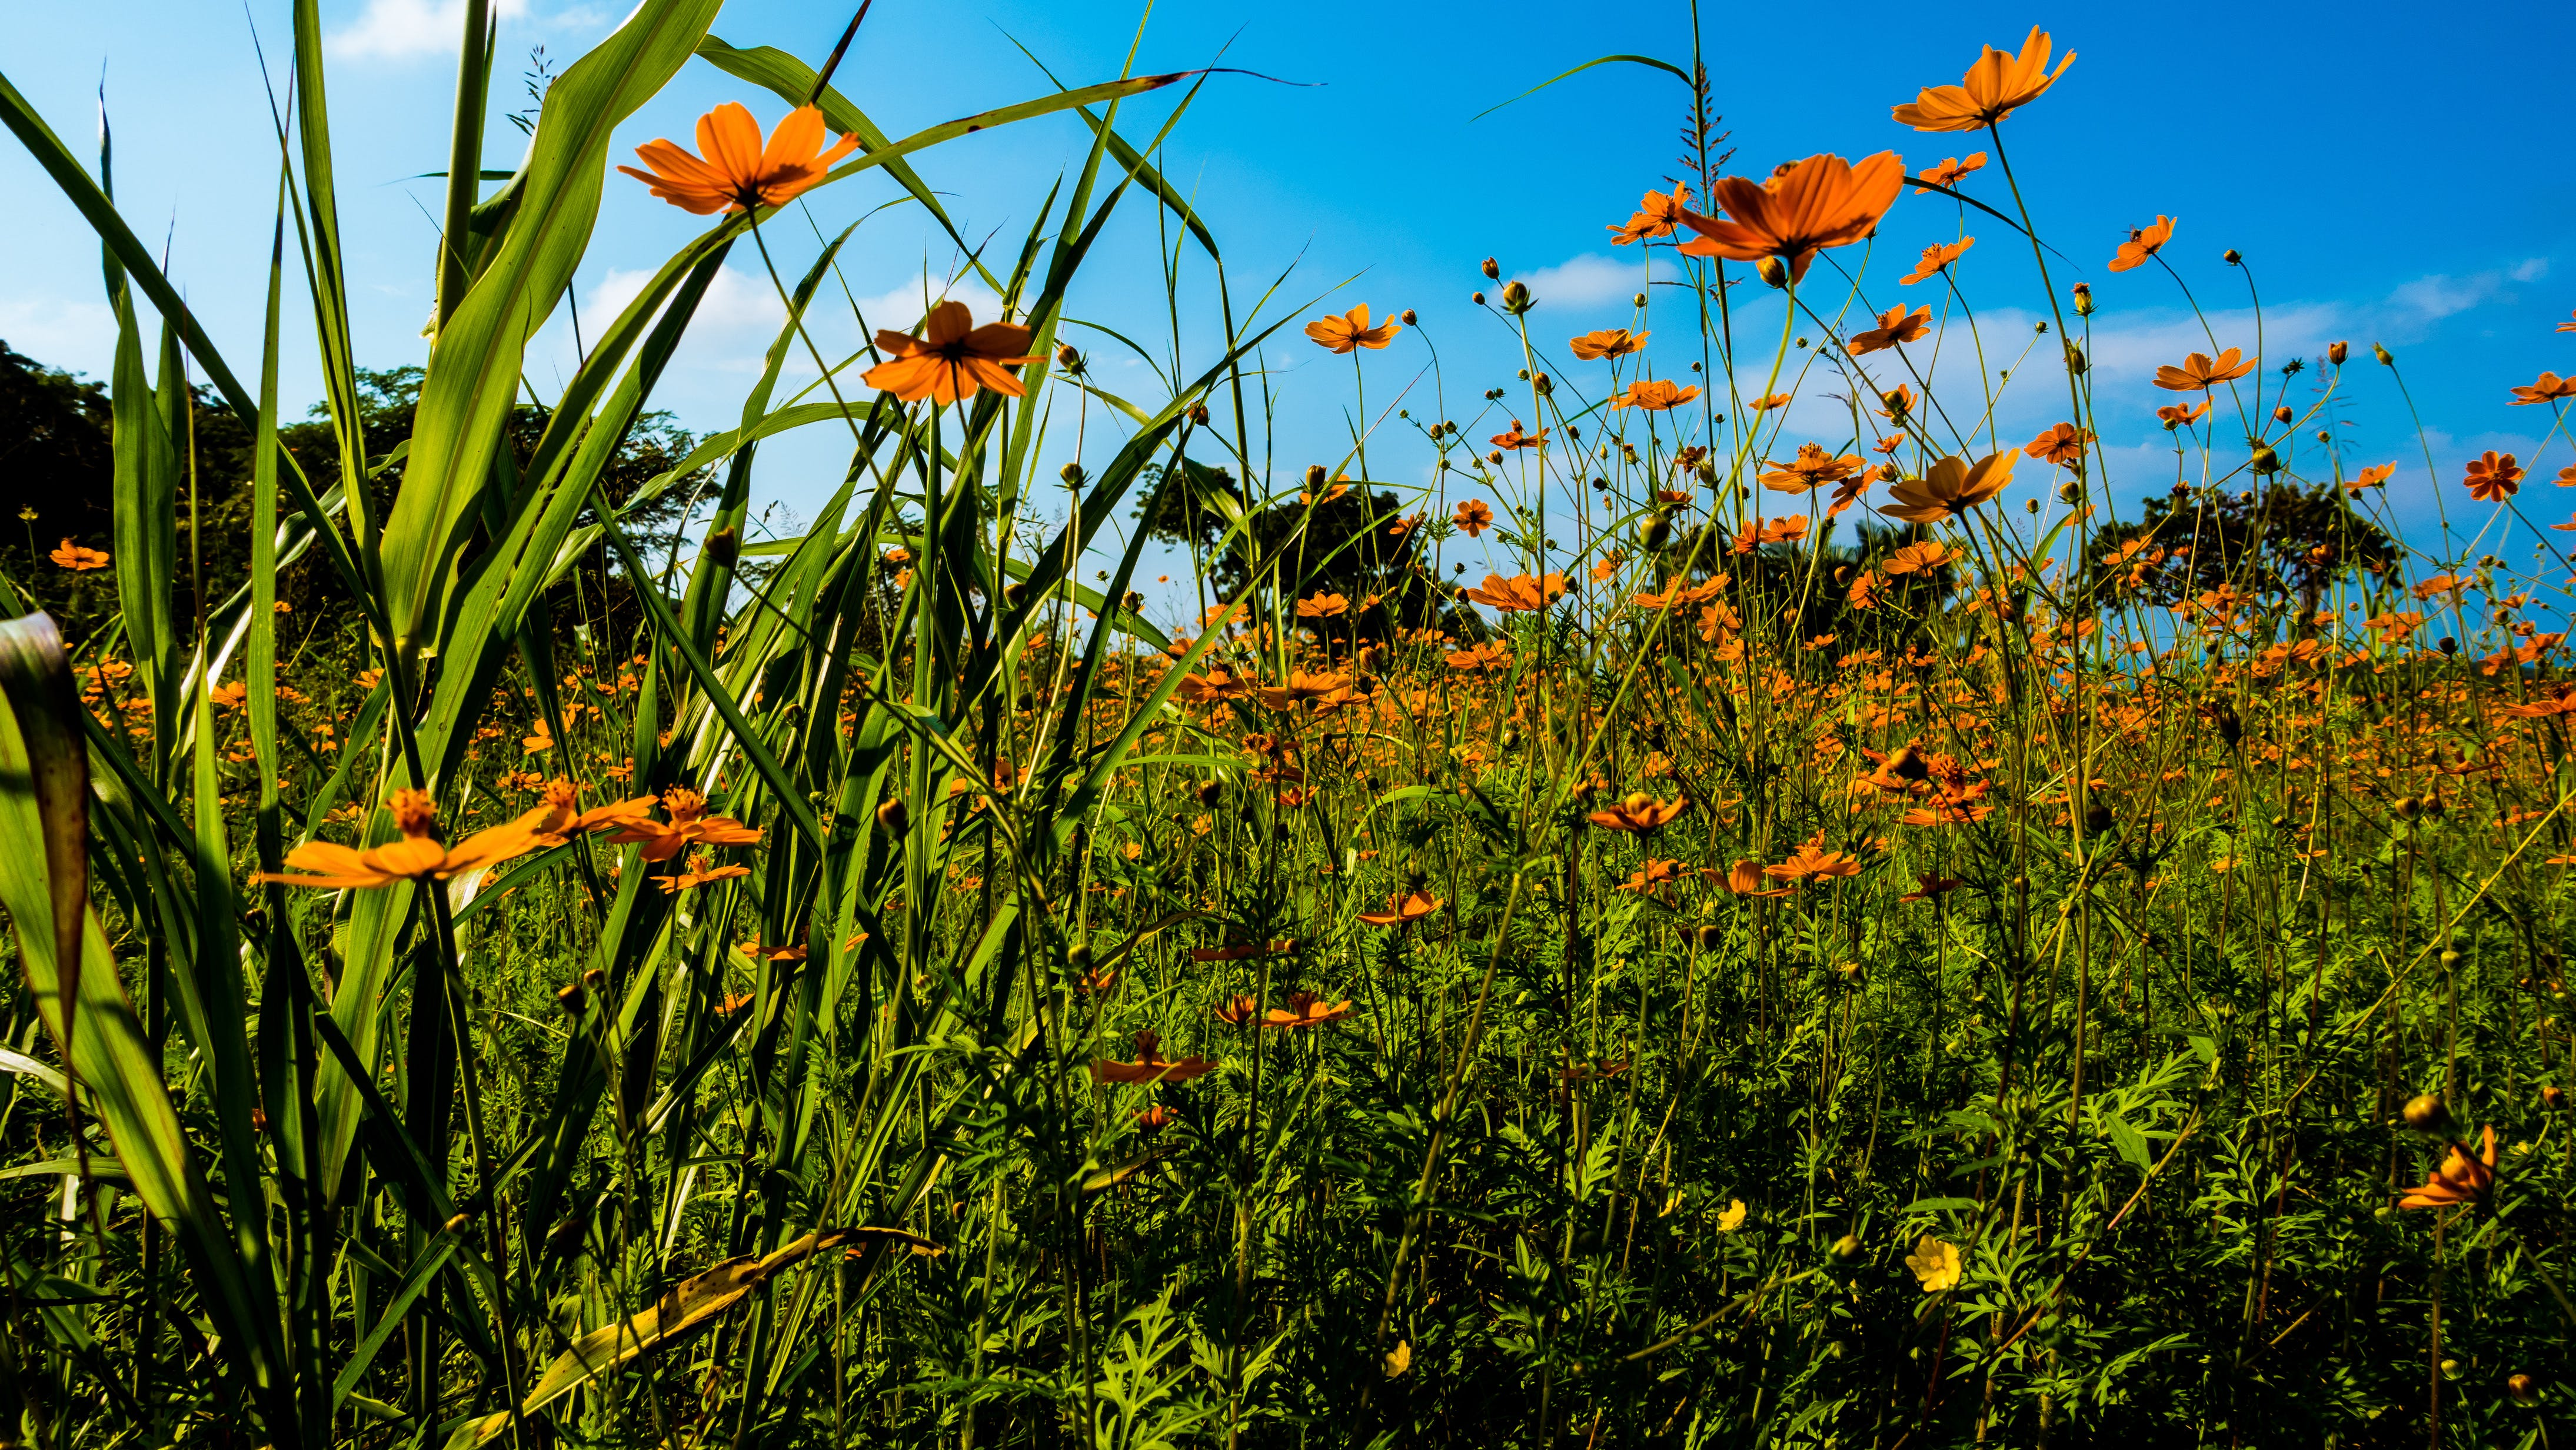 Orange Flower Field Under Clear Blue Sky